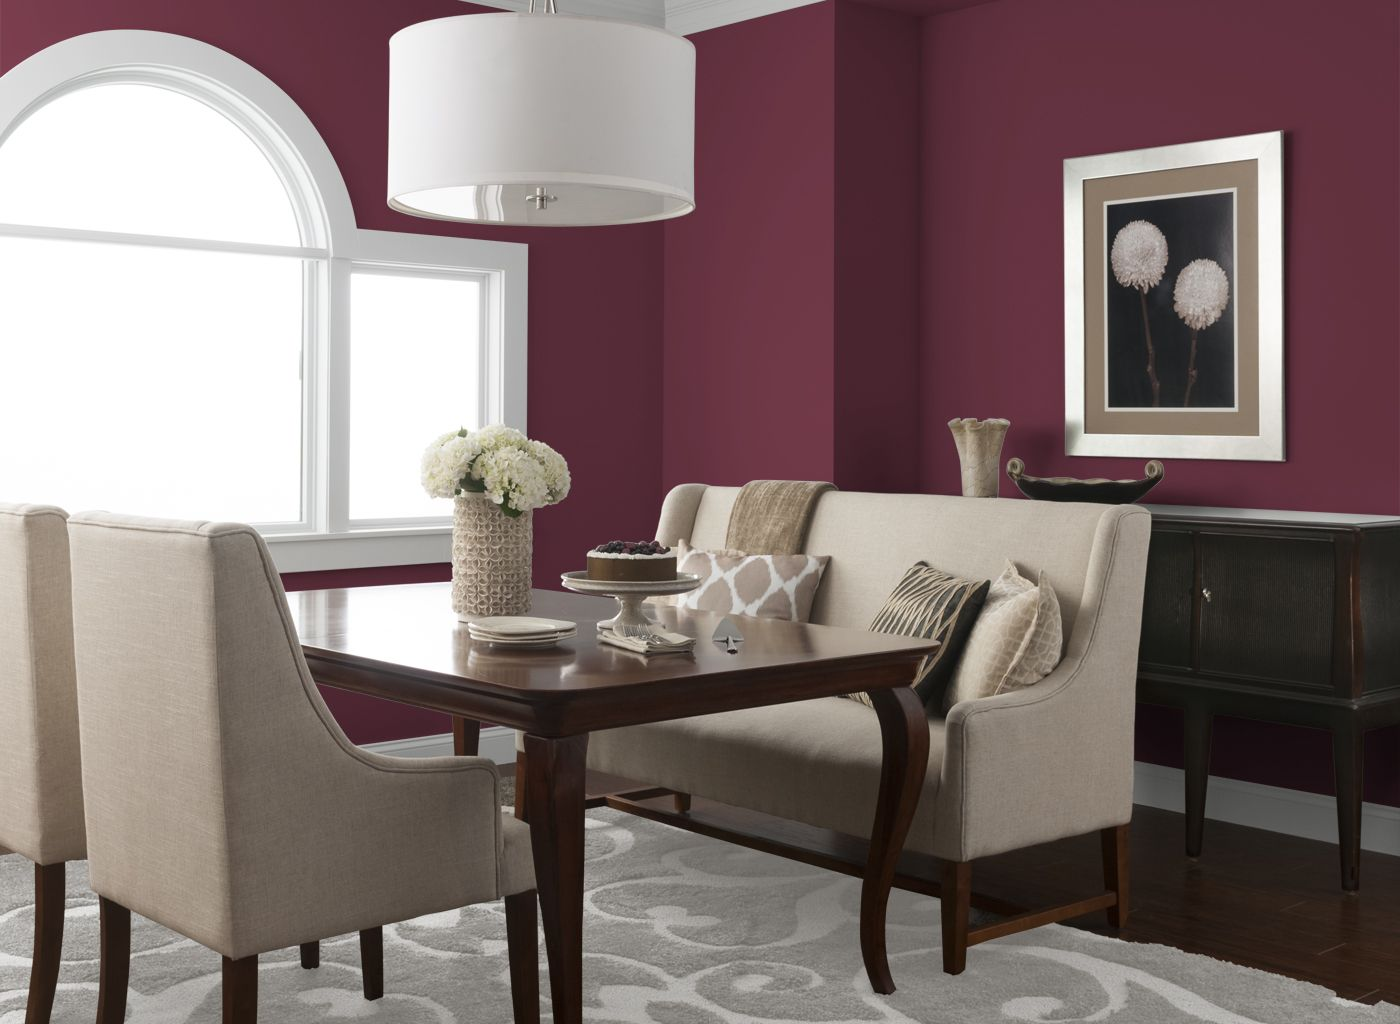 dining room in bold sangria | stuff to buy | pinterest | sangria